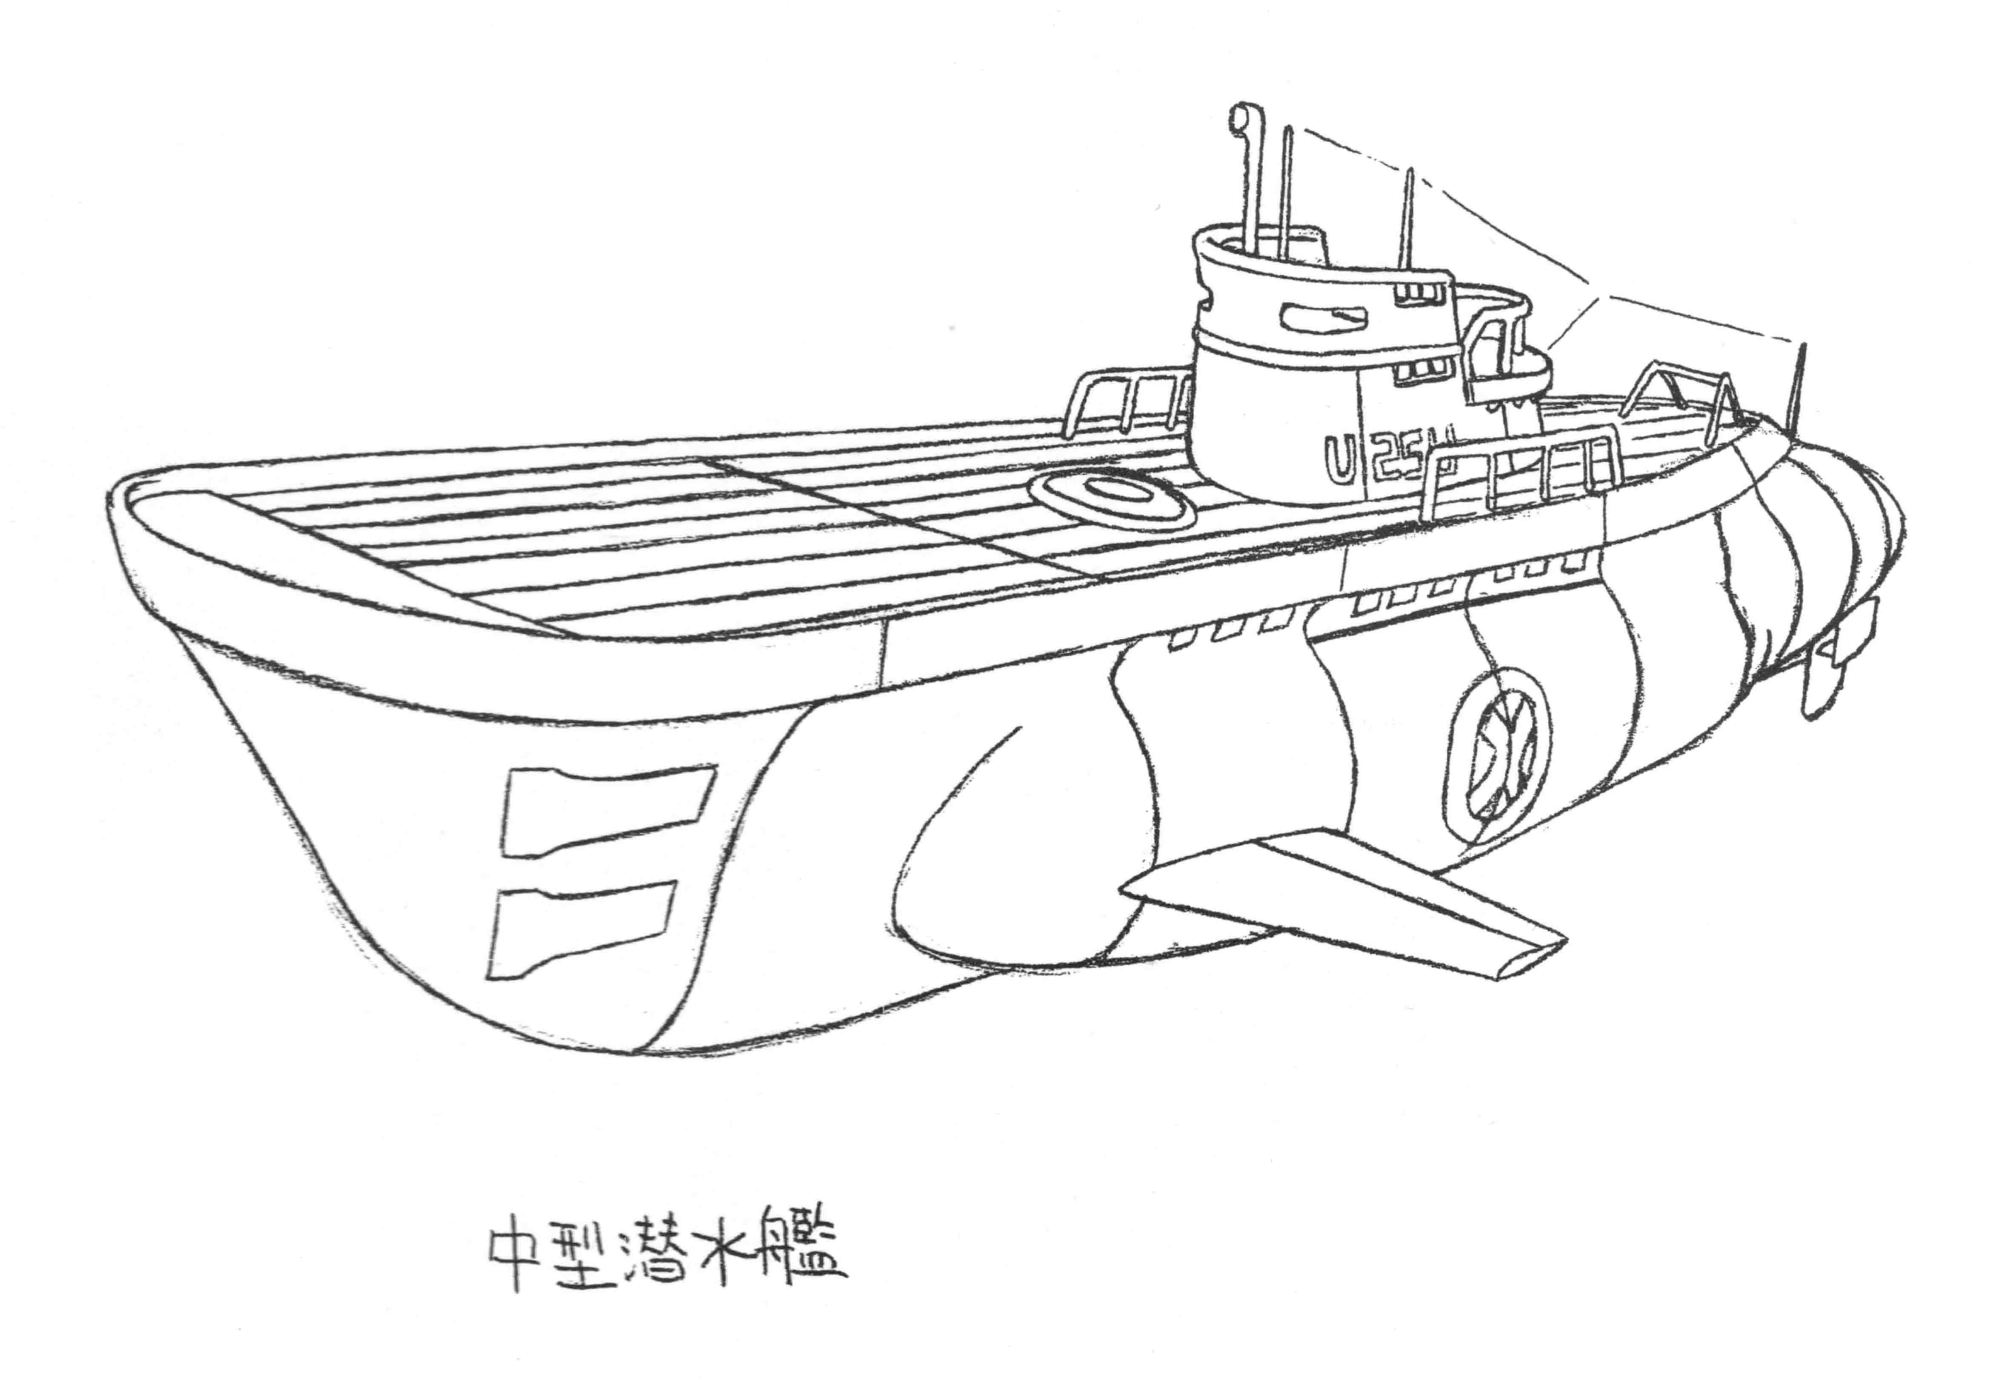 hight resolution of 4700x3260 image u boat sketch